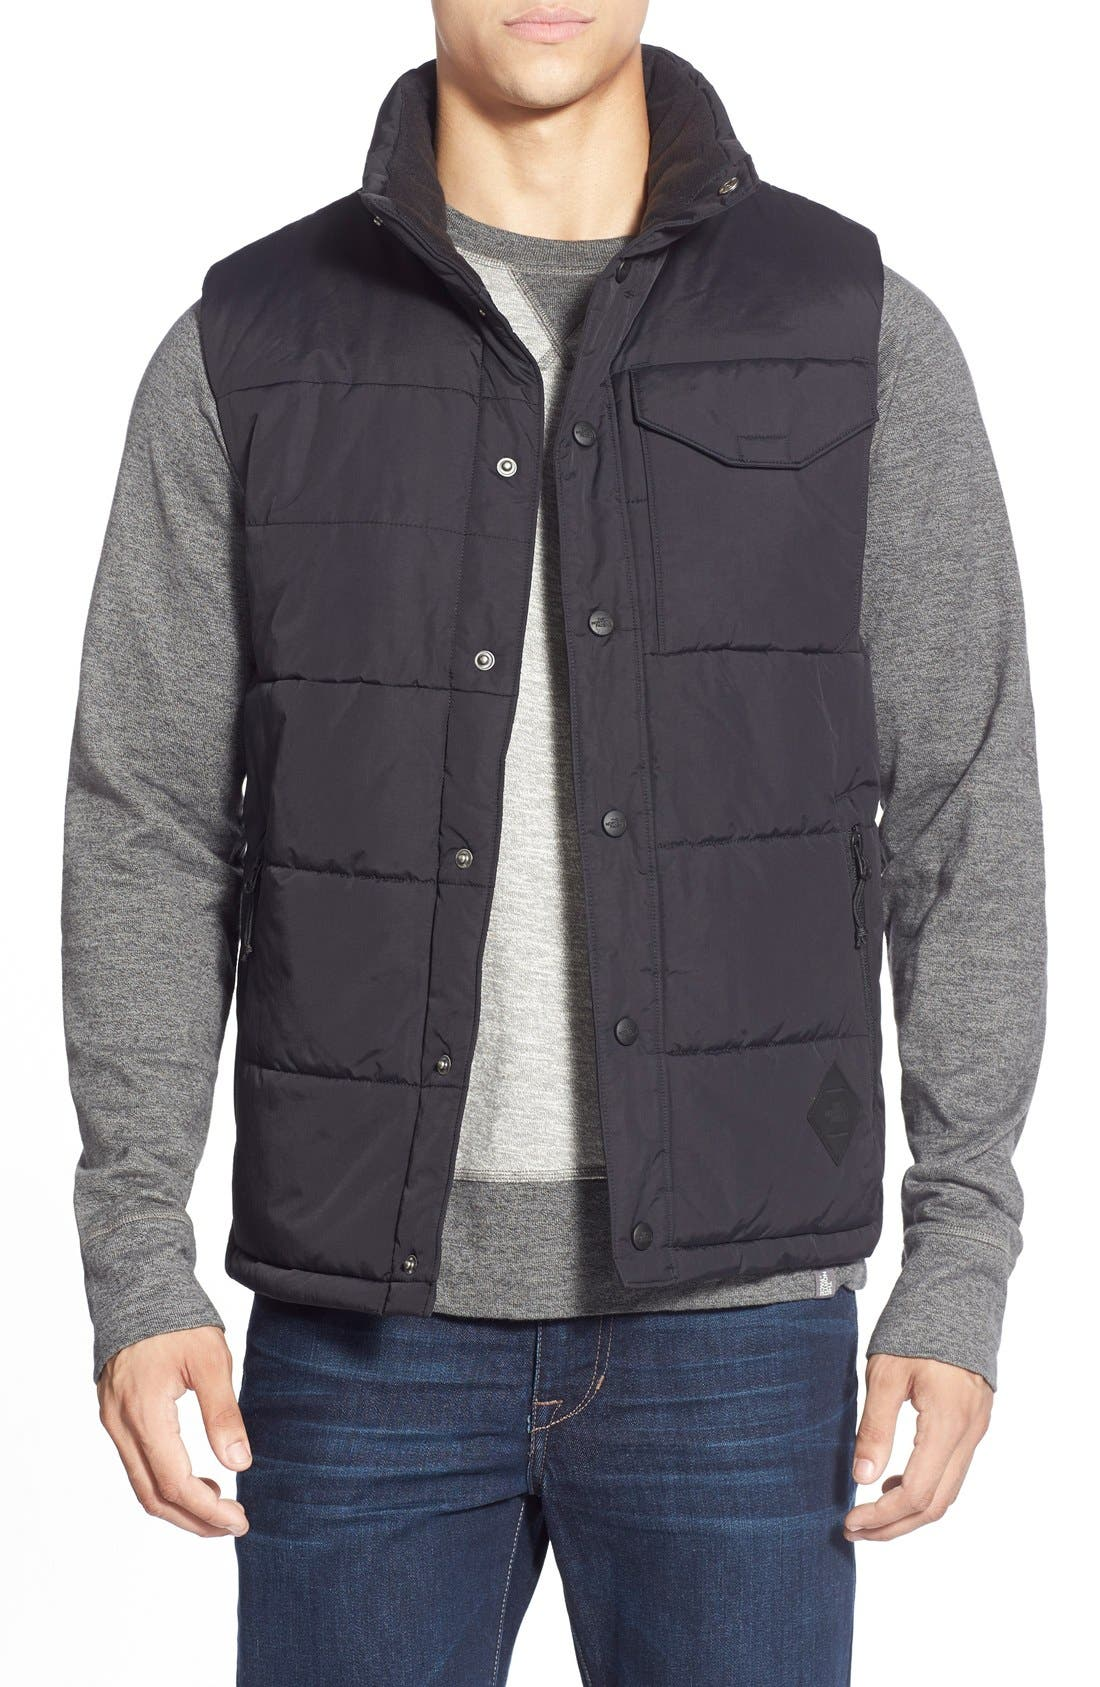 'Patrick's Point' Quilted Vest,                         Main,                         color, 001